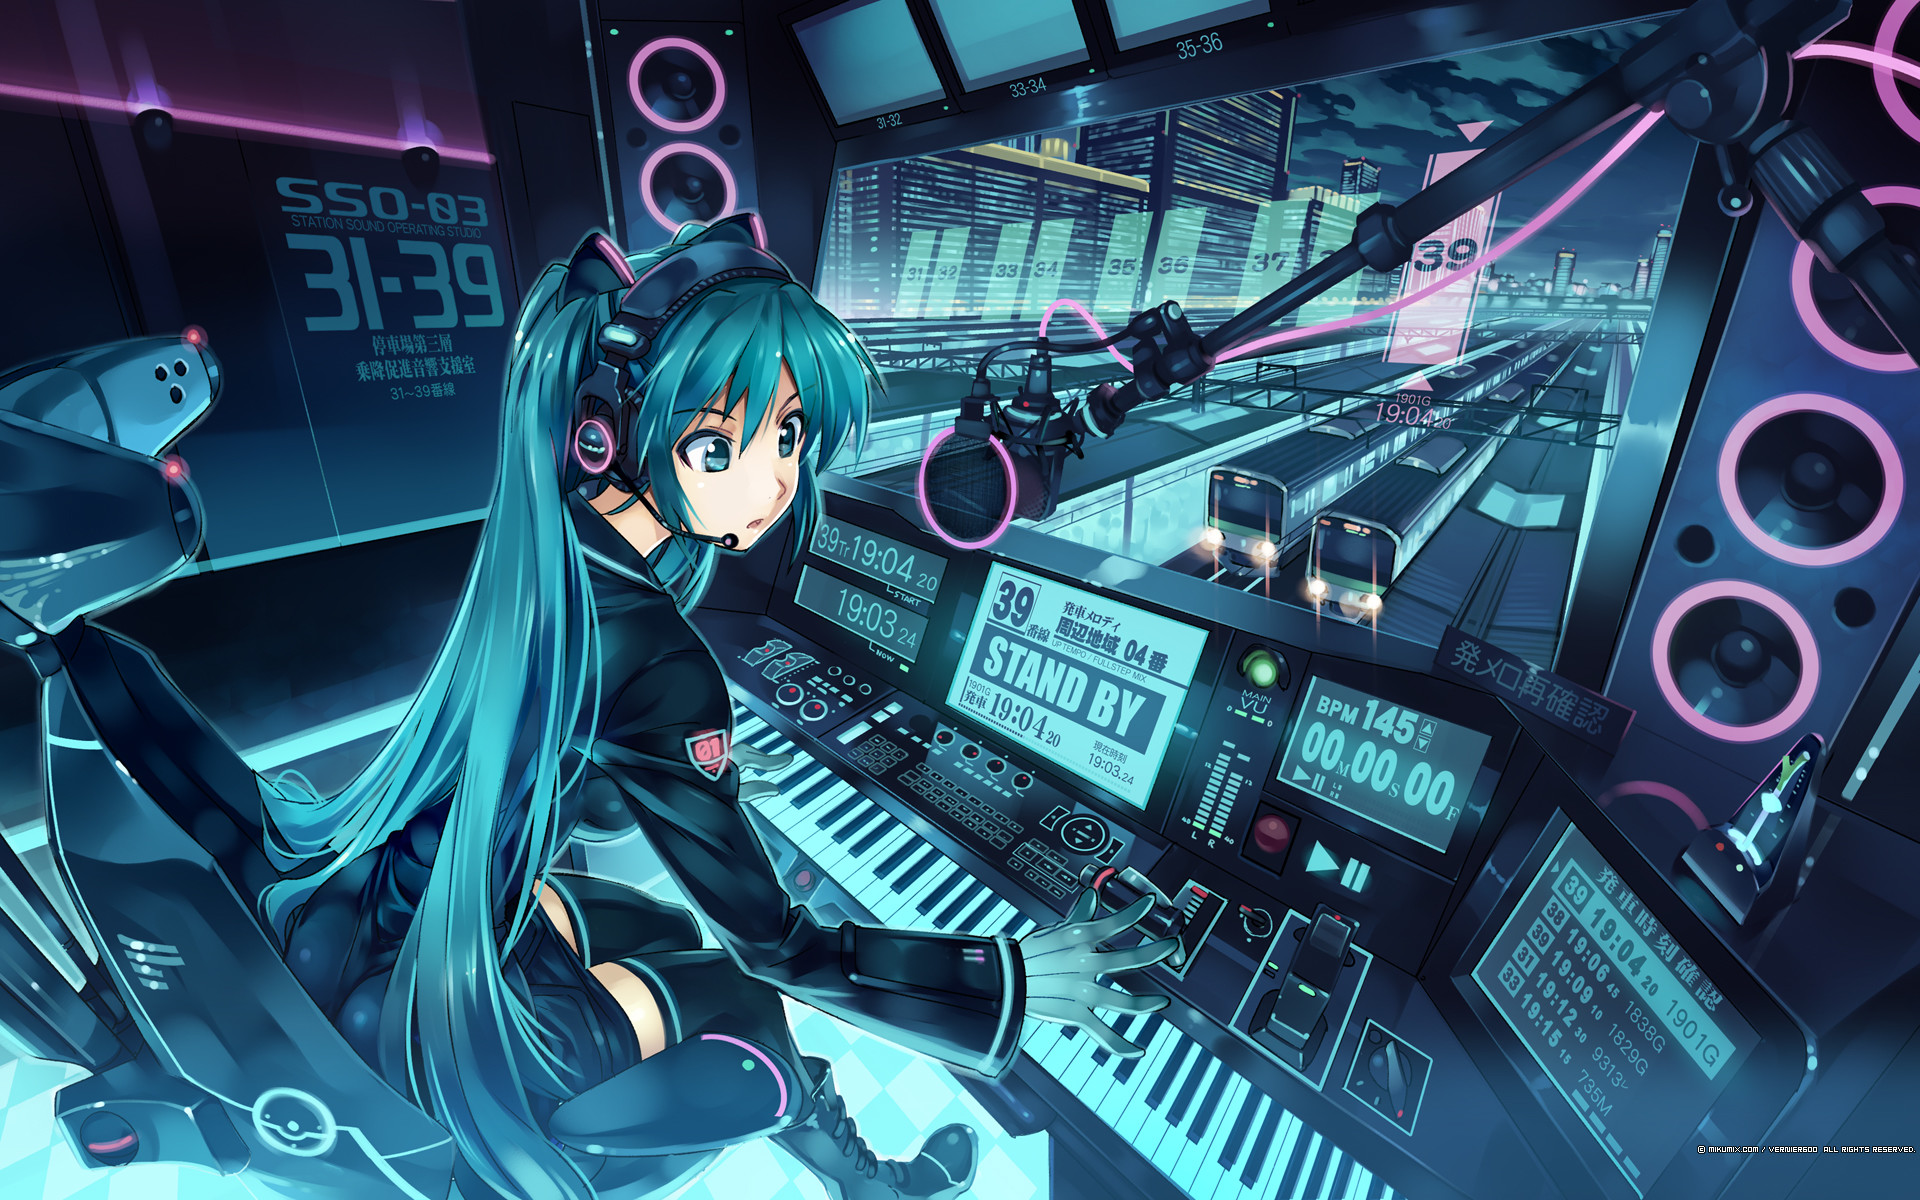 1920x1200 Anime Music Wallpapers For PC 2648